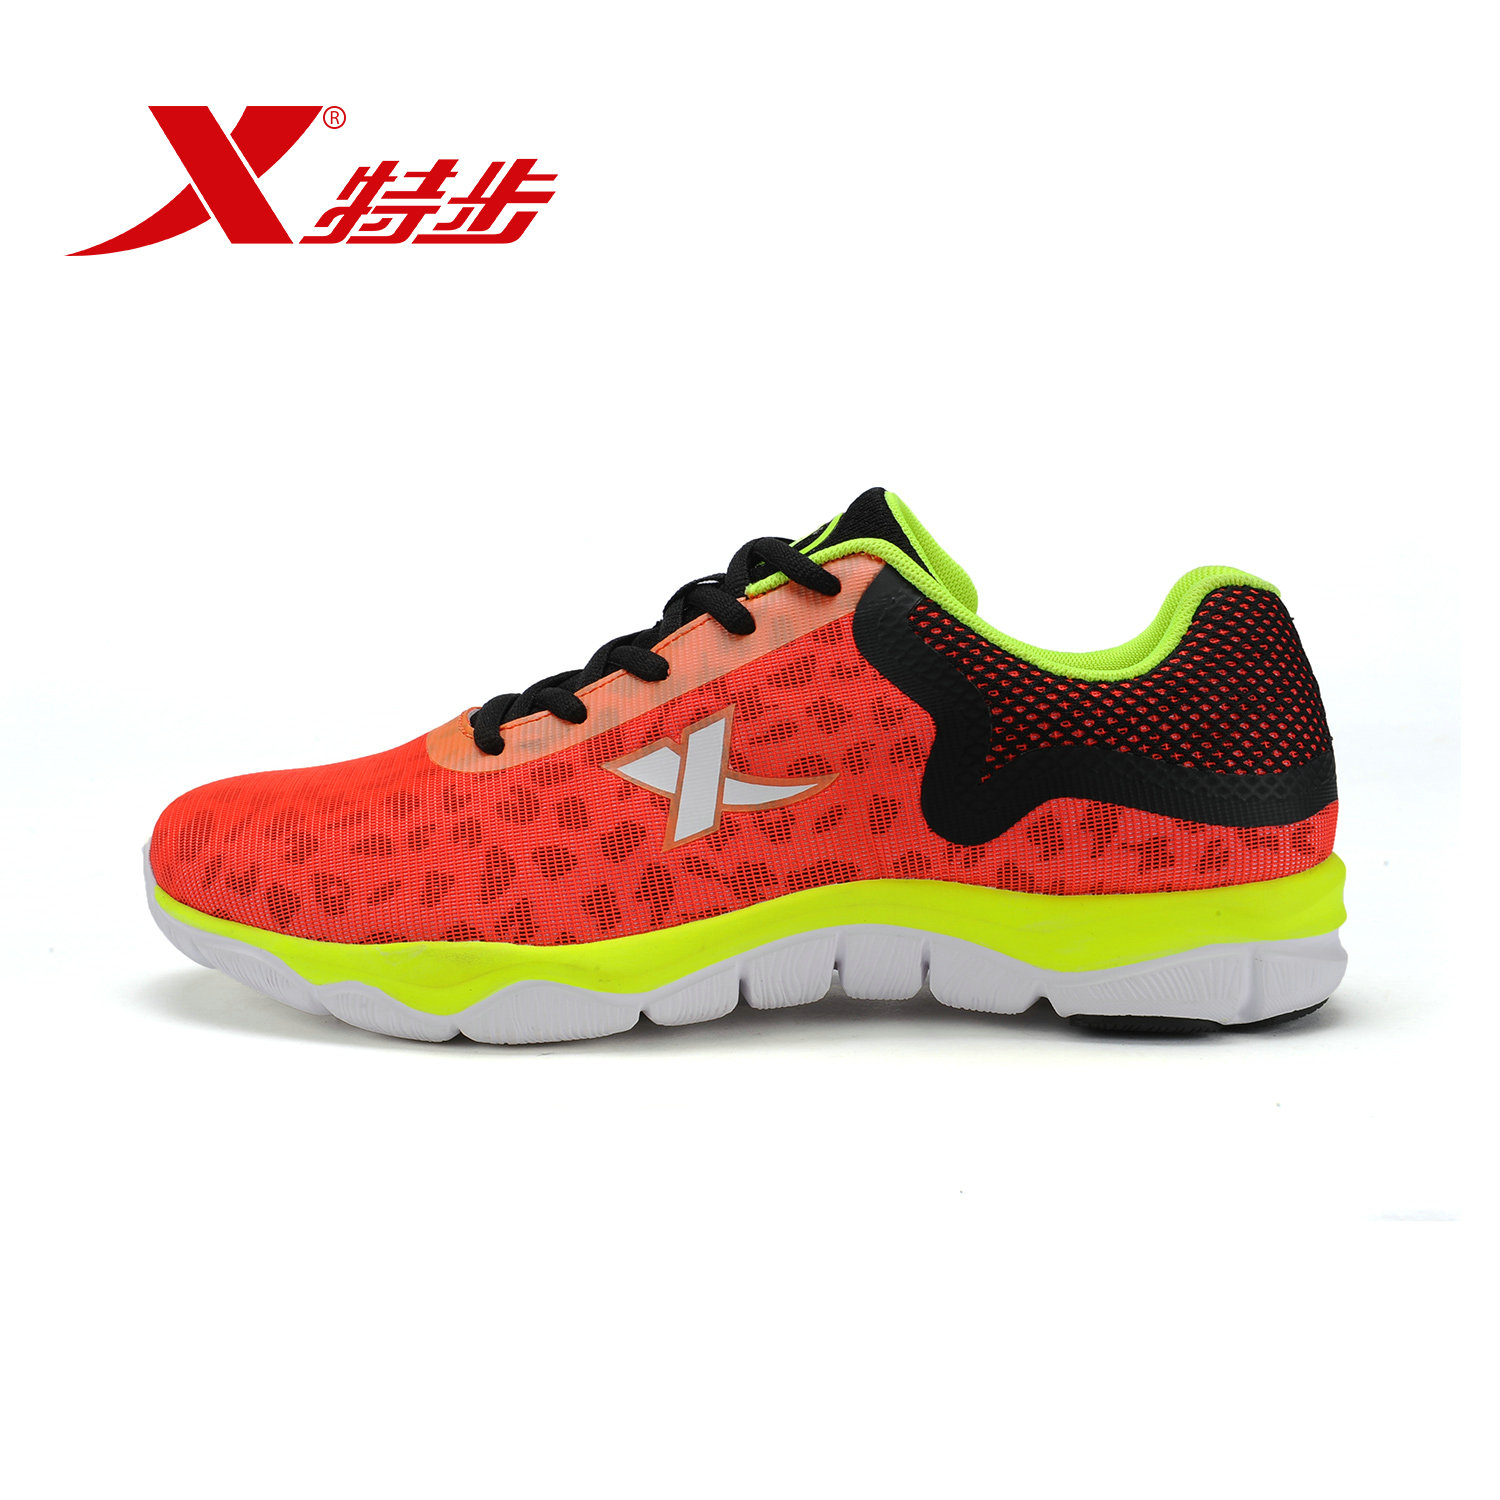 Xtep genuine men's fall sports shoes men running shoes lightweight breathable running shoes 984119119373